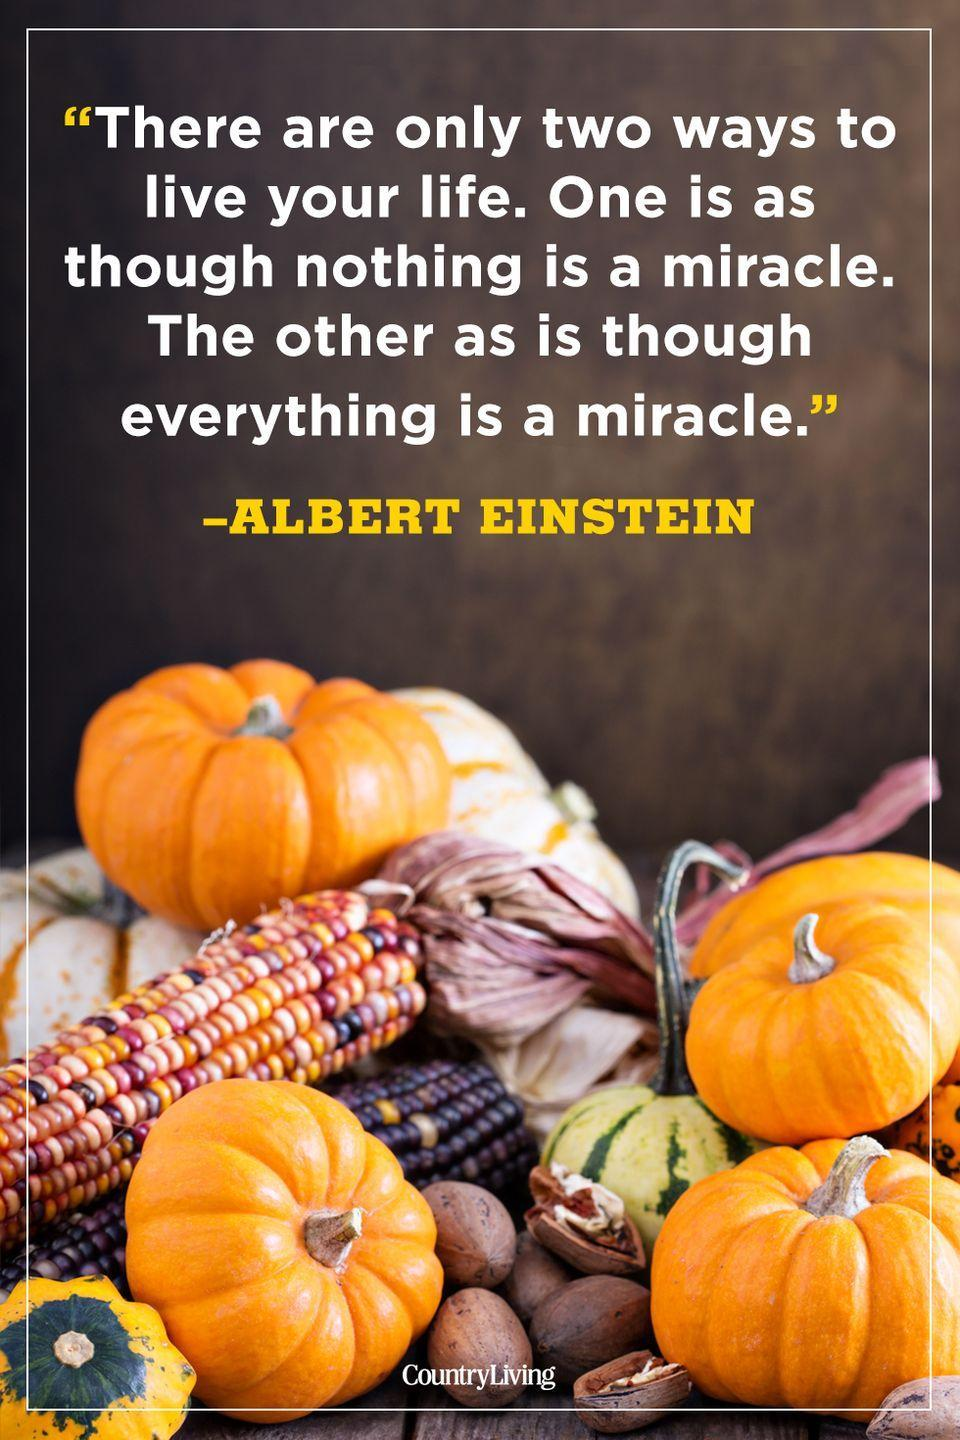 """<p>""""There are only two ways to live your live. One is as though nothing is a miracle. The other as is though everything is a miracle.""""</p><p><strong>RELATED:</strong> <a href=""""https://www.countryliving.com/entertaining/g1371/thanksgiving-decorations/"""" rel=""""nofollow noopener"""" target=""""_blank"""" data-ylk=""""slk:Festive and Cozy Ideas for Thanksgiving Decorations"""" class=""""link rapid-noclick-resp"""">Festive and Cozy Ideas for Thanksgiving Decorations</a></p>"""